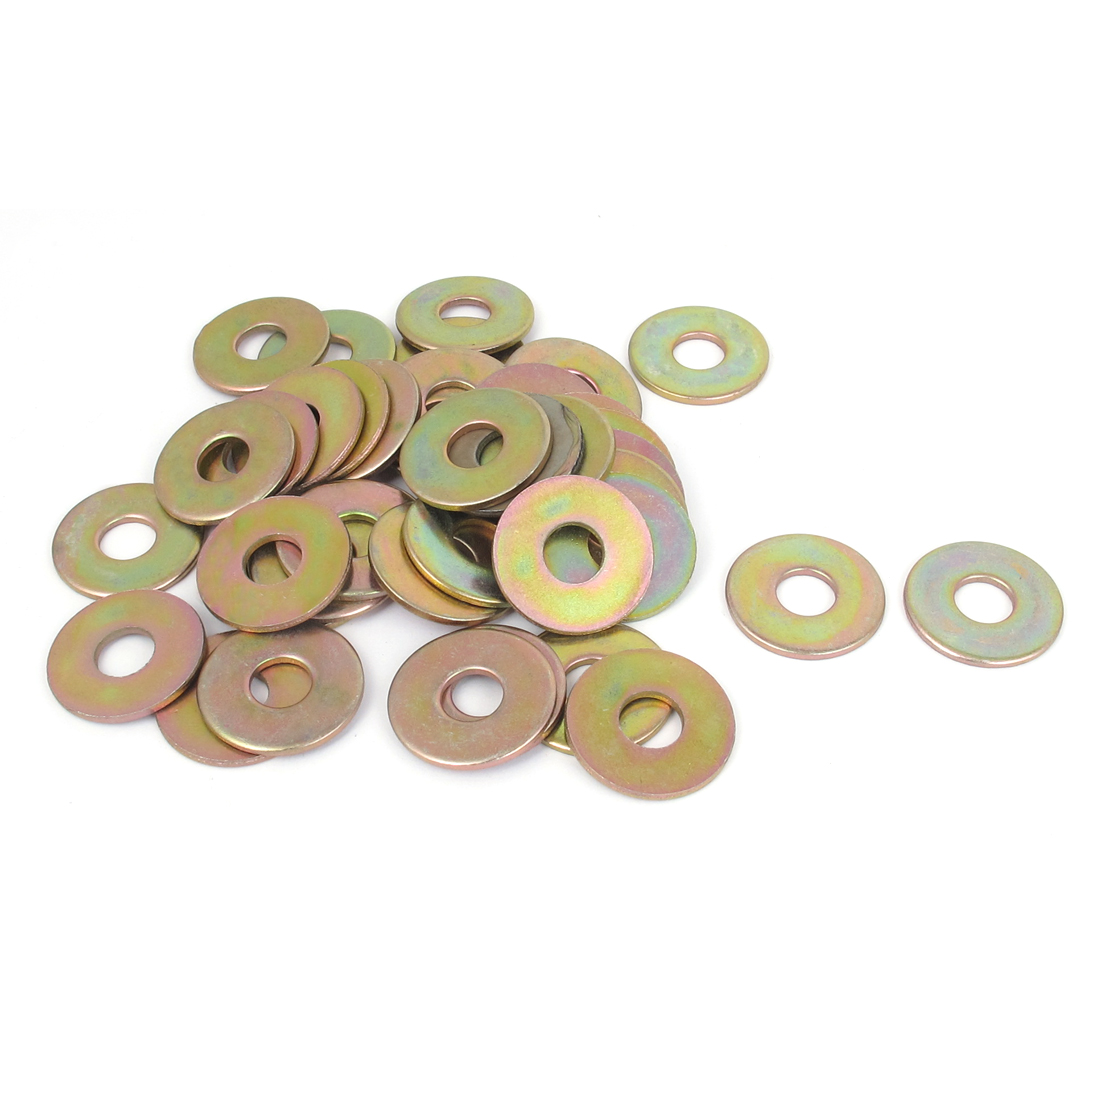 40Pcs M10x28mmx2mm Gold Tone Metric Round Flat Washer for Bolt Screw